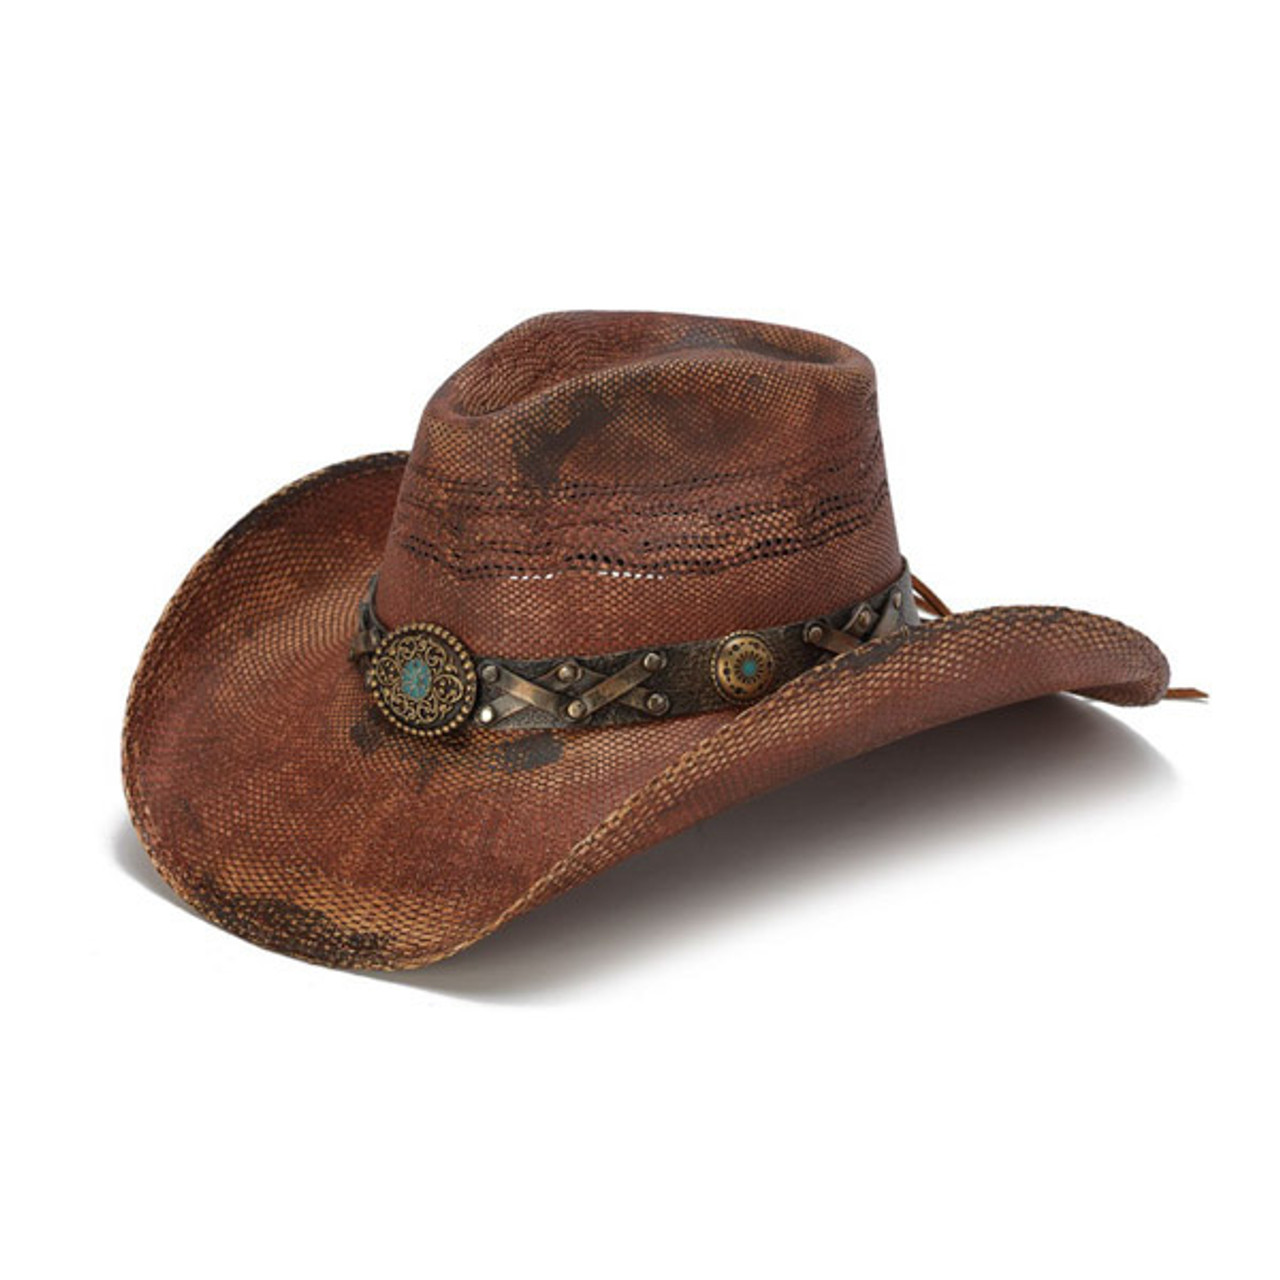 357931e7030 Stampede Hats - Rustic Burgundy Cowboy Hat with Turquoise Stone